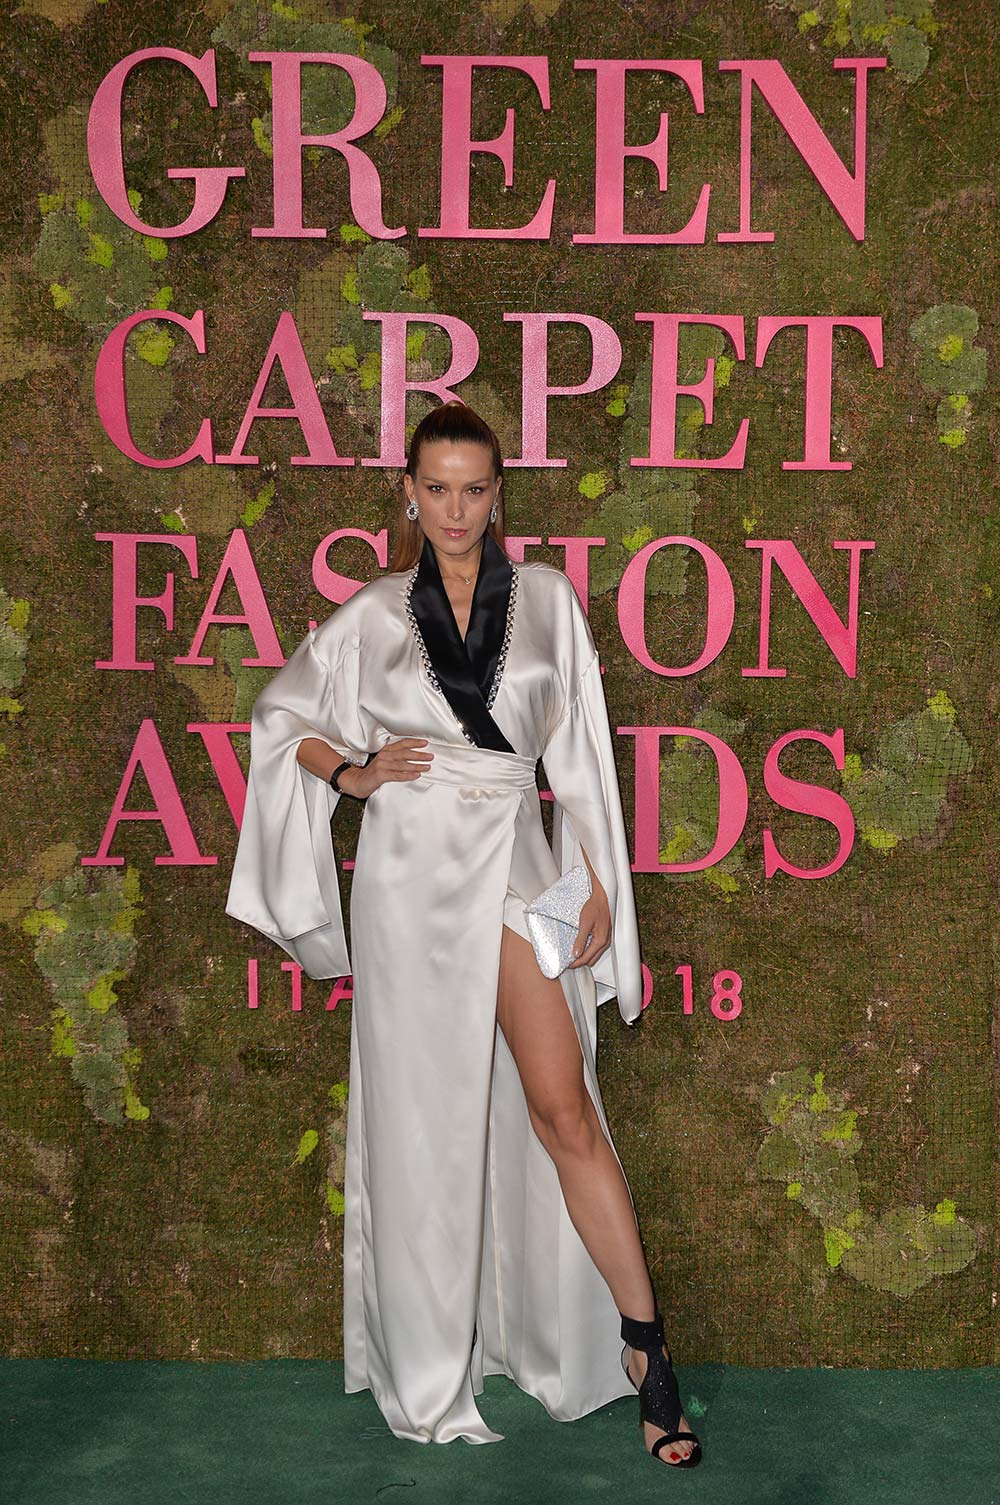 Green Carpet Fashion Awards 2018 - Petra Nemcova - Hair & Makeup Massimo Serini Team